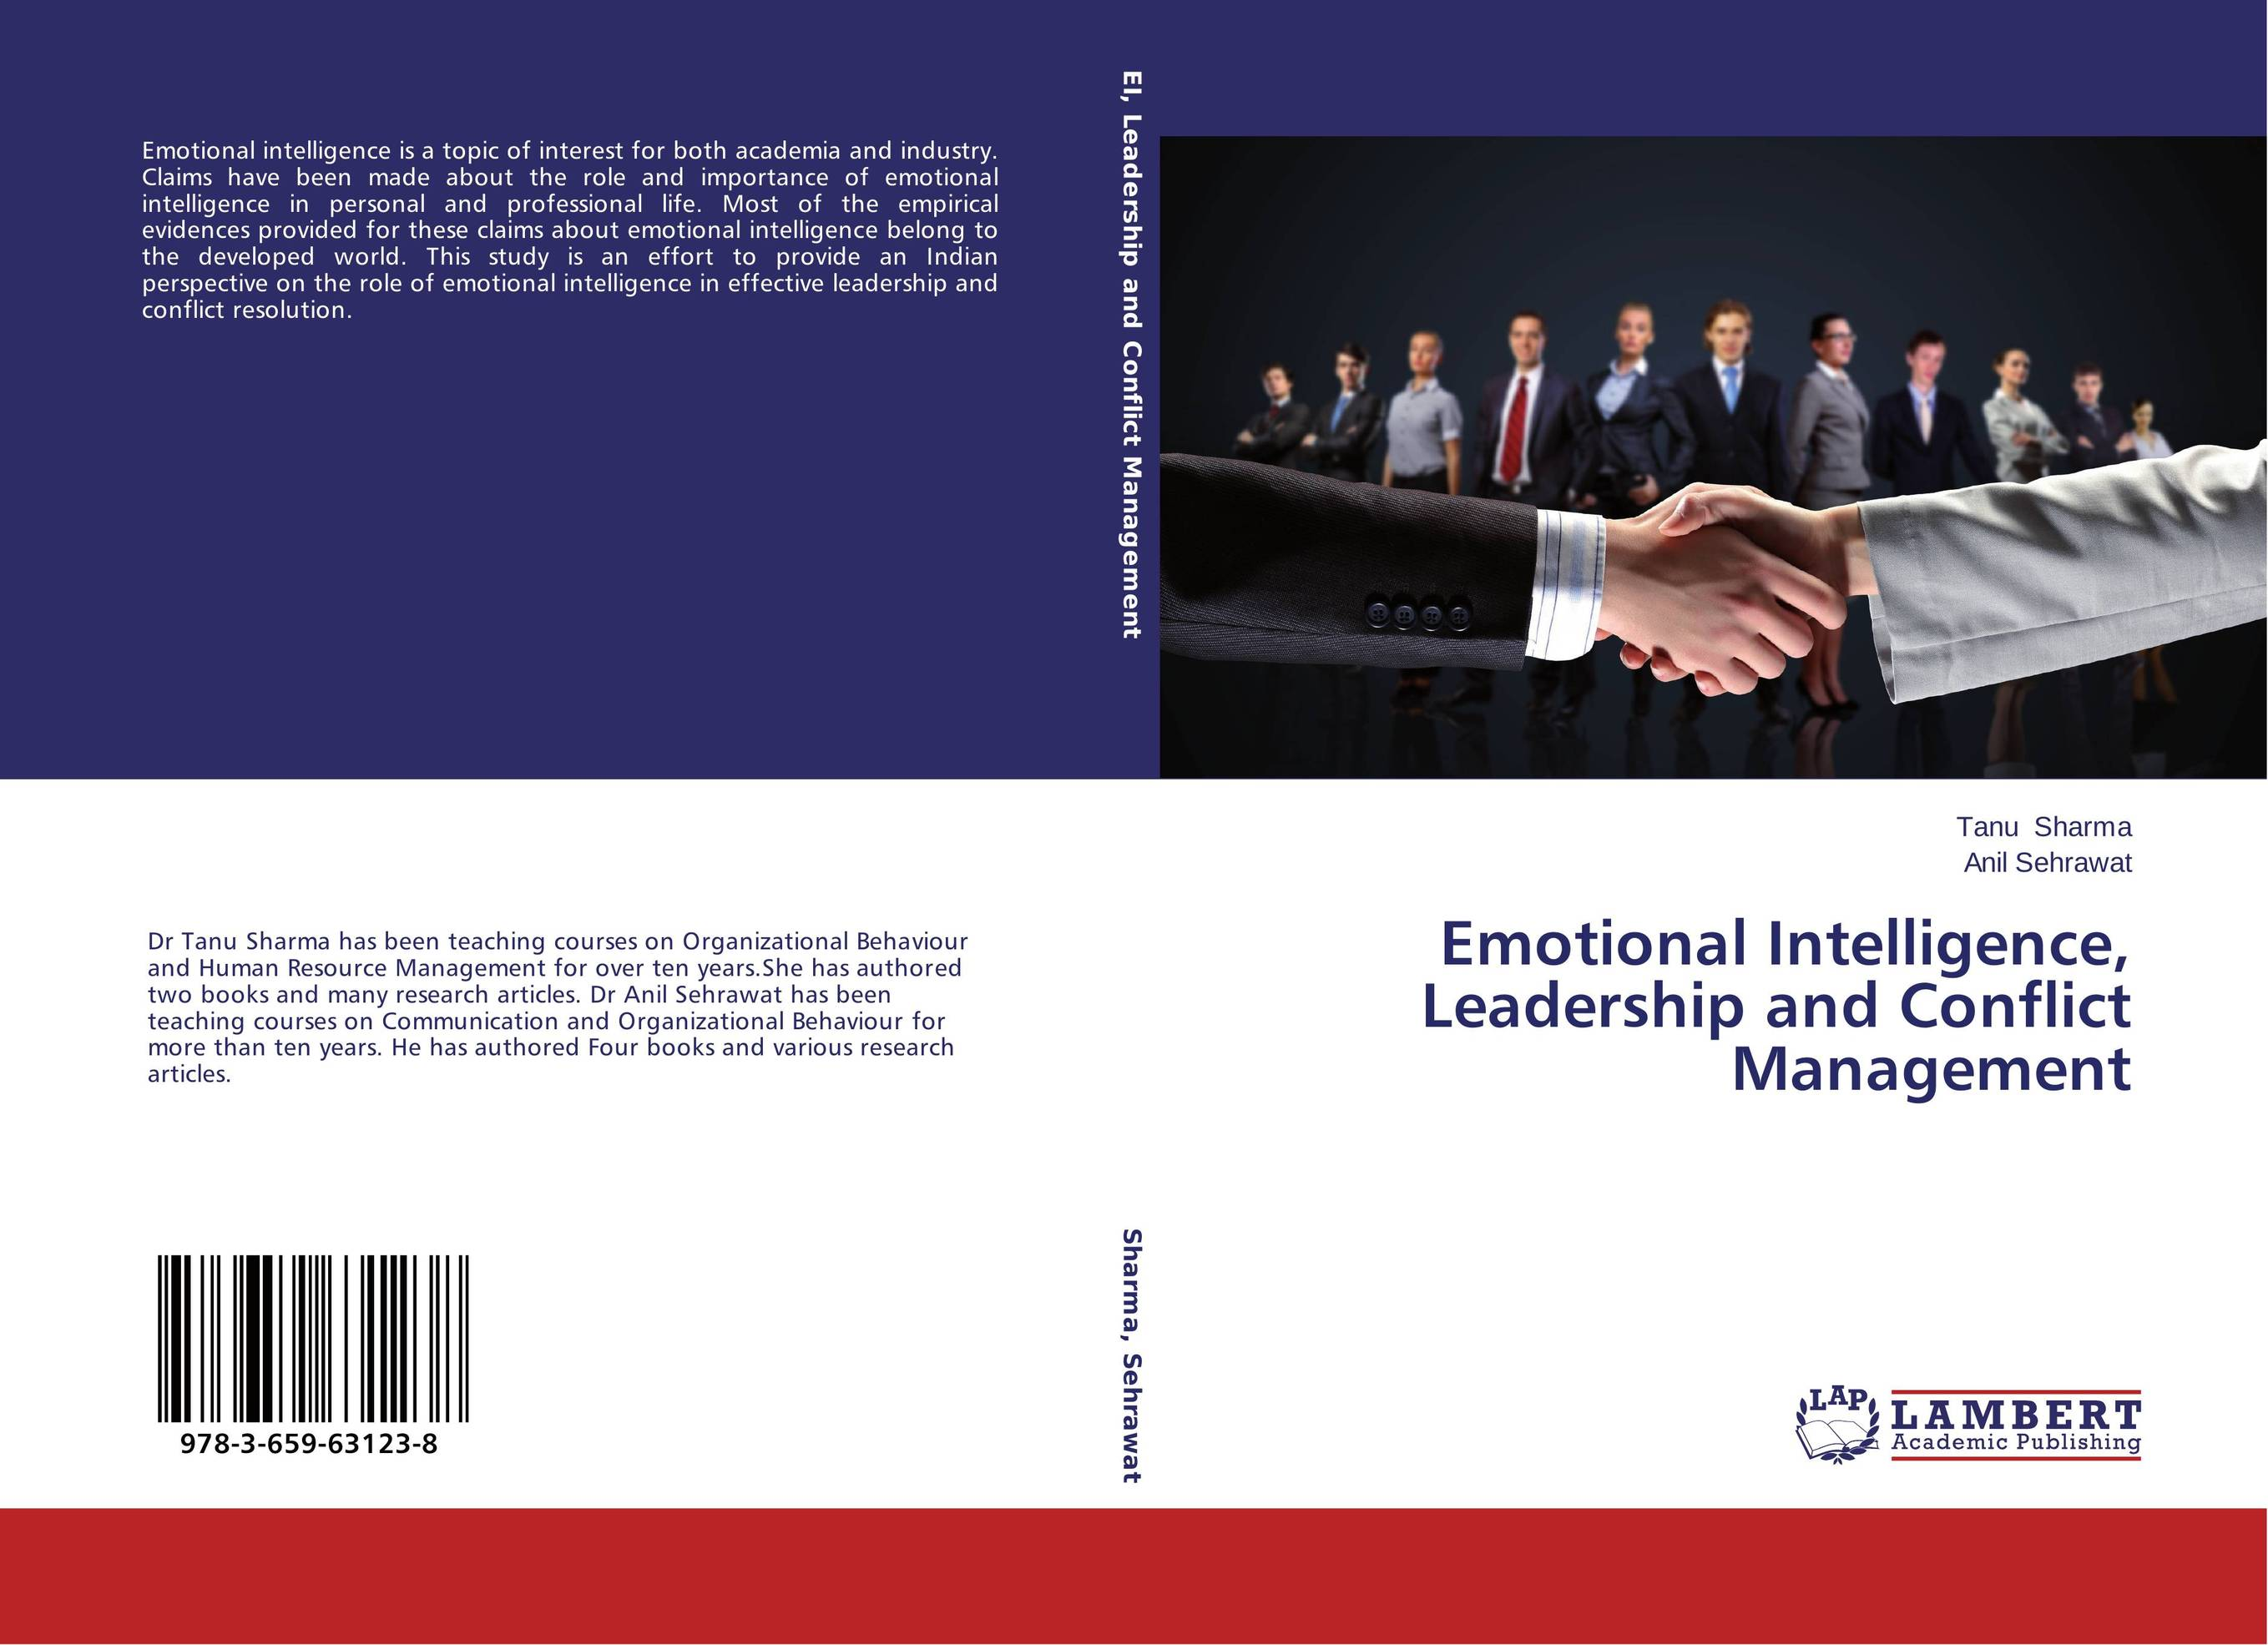 emotions and leadership the role of The question is how these emotions will be used by those in positions of leadership to retain emotional political power, to gain and retain voters, and what the consequences of emotion without.